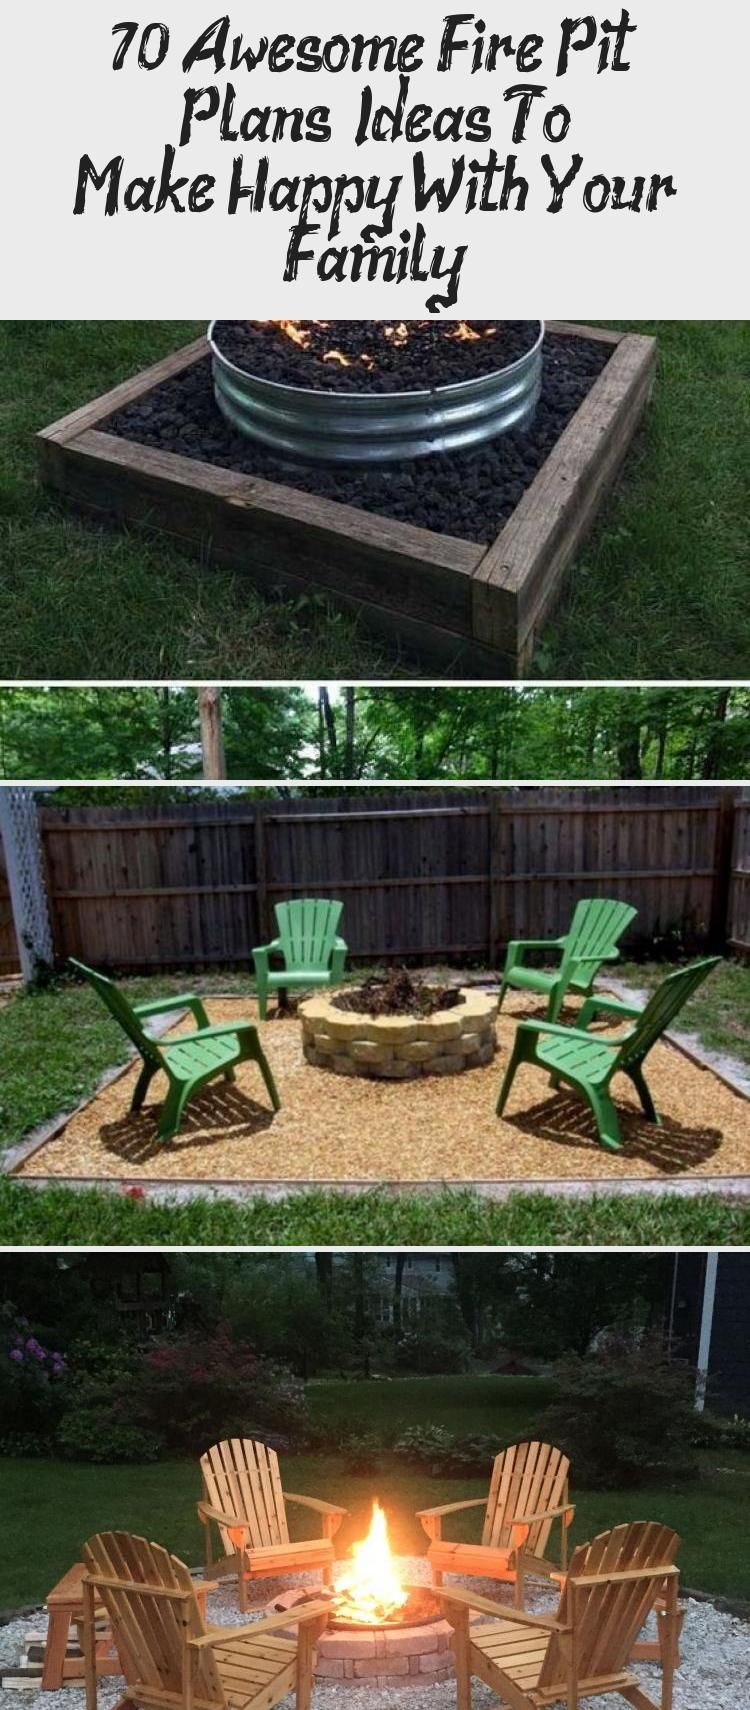 70+ Awesome Fire Pit Plans & Ideas To Make Happy With Your ...